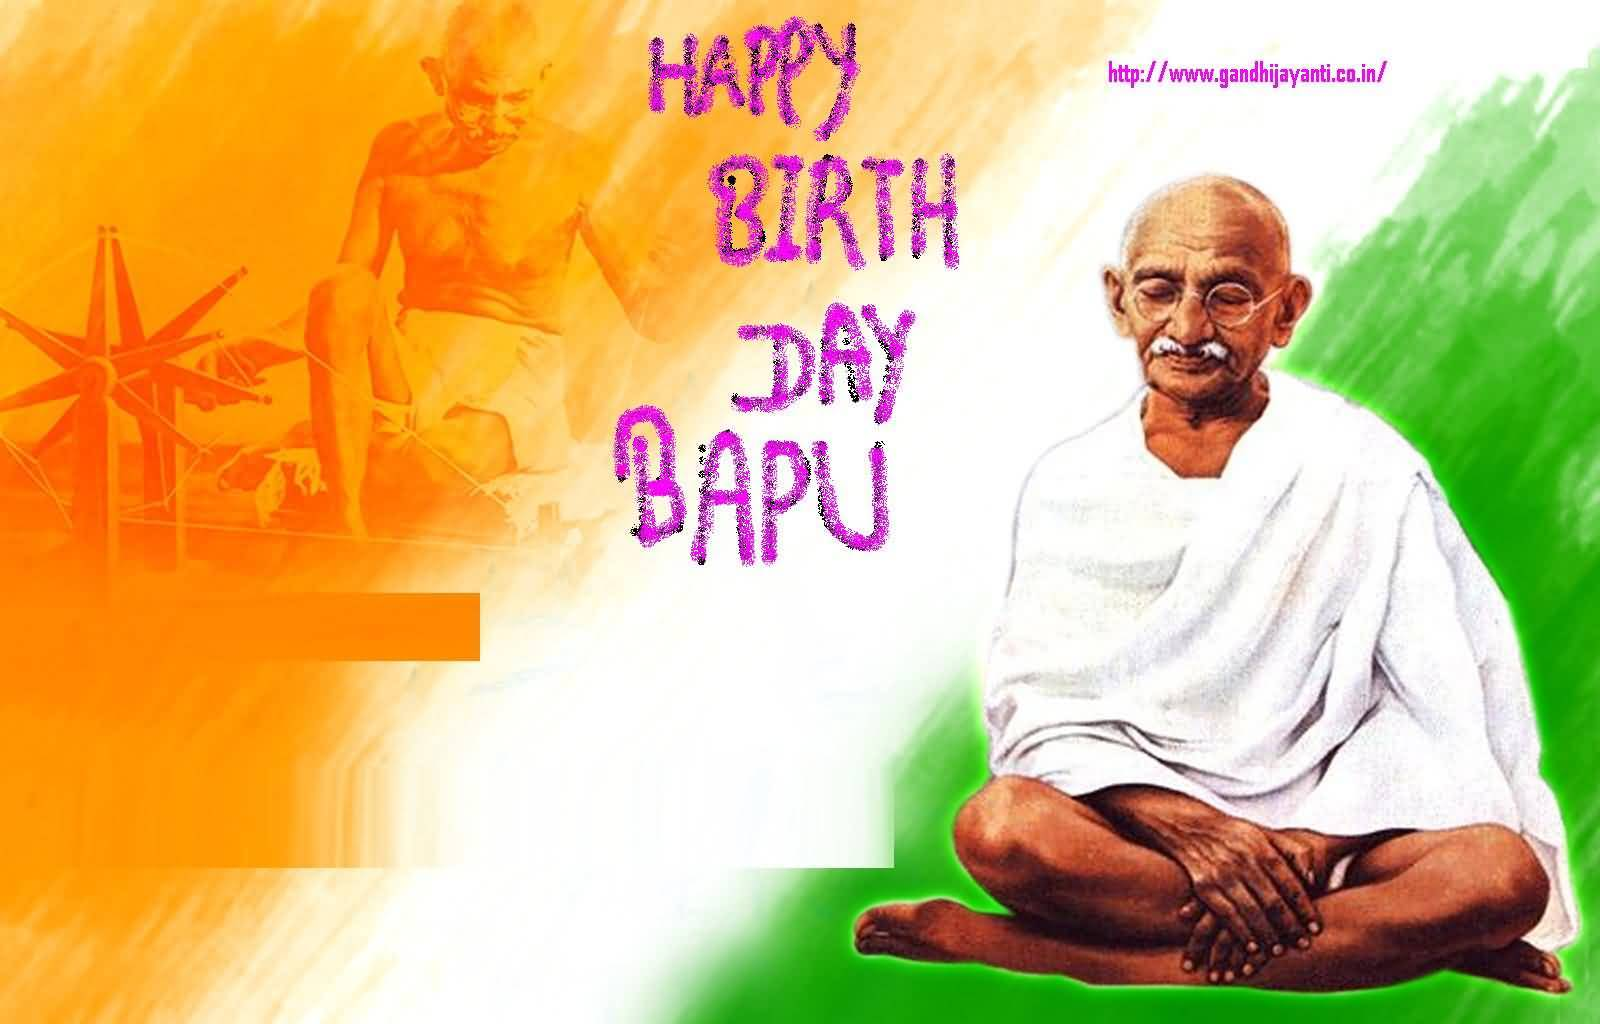 best gandhi jayanti wishes pictures and images happy birthday bapu gandhi